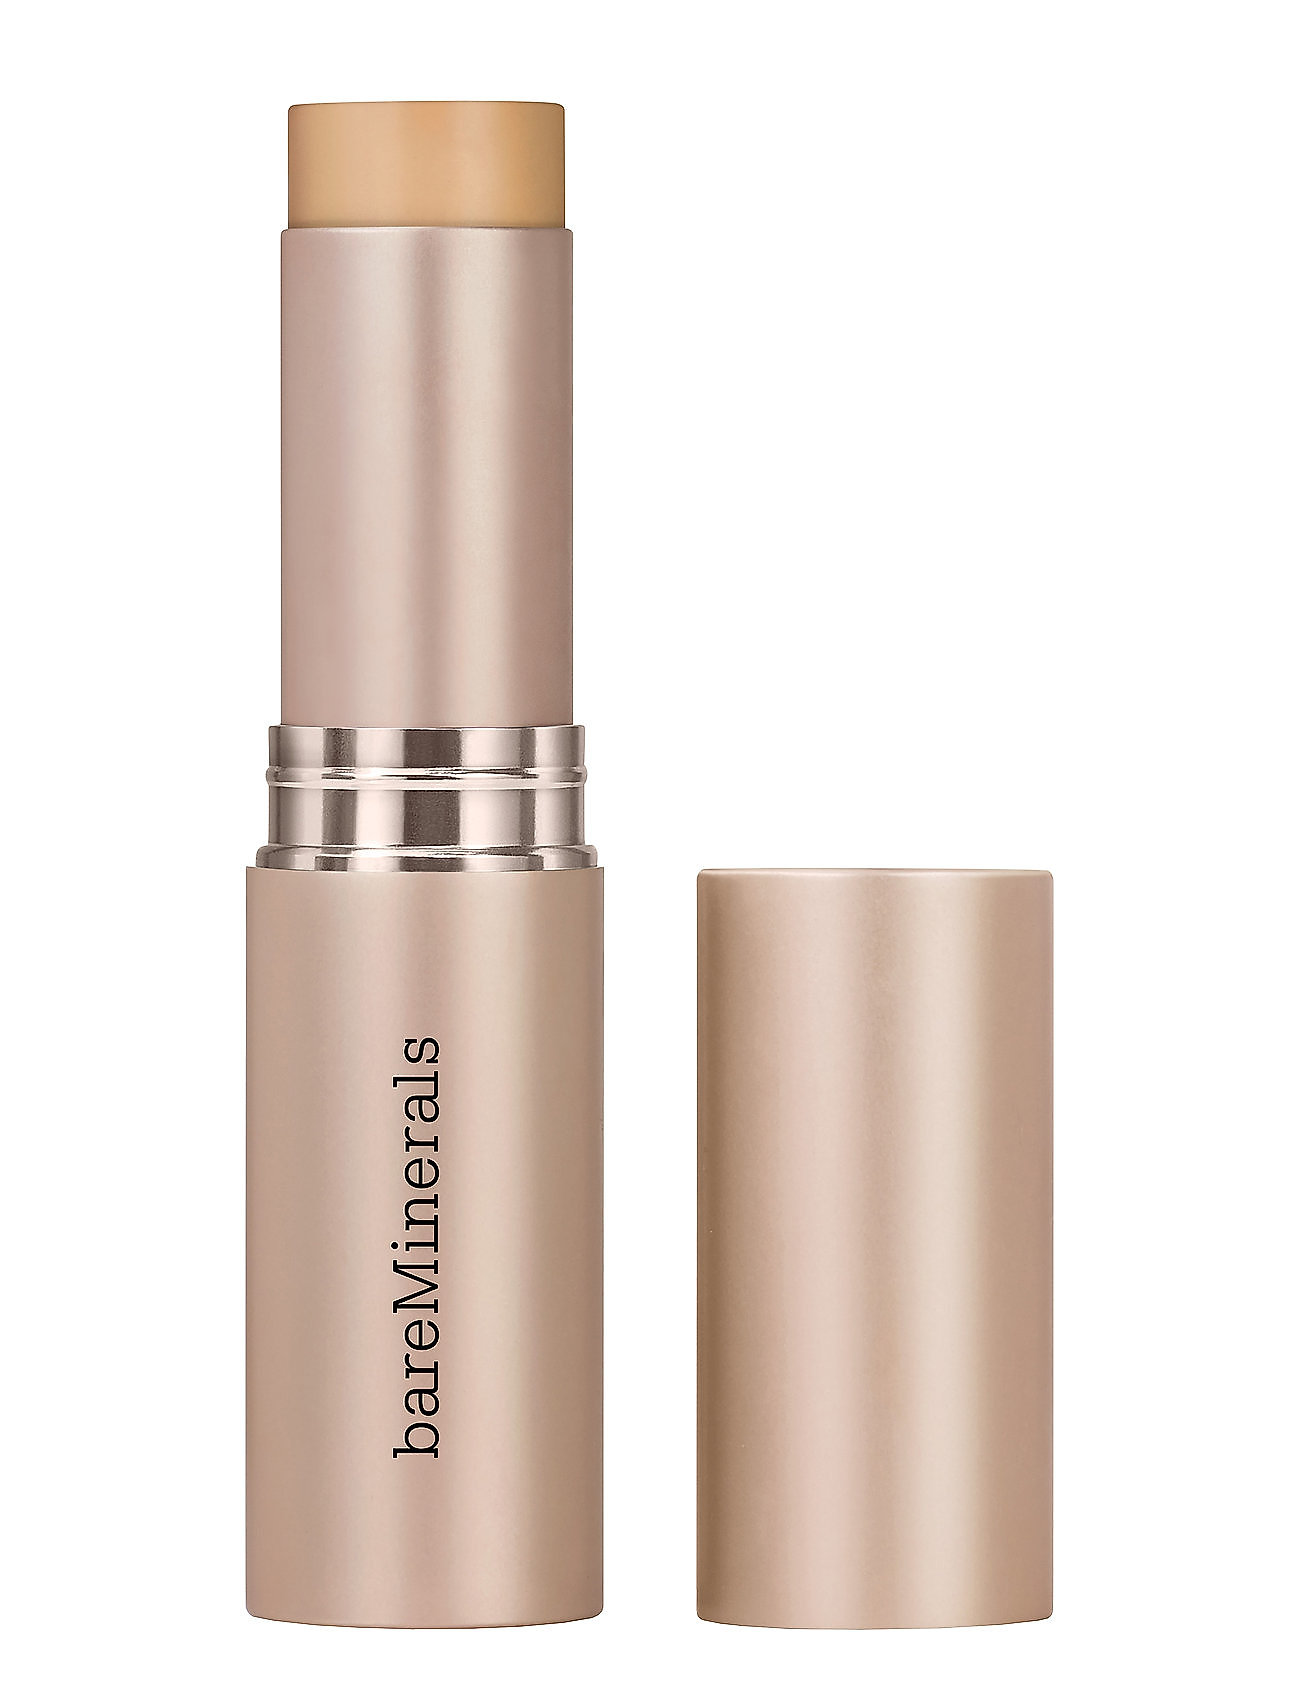 Image of Complexion Rescue Hydrating Foundation Stick Spf 25 Foundation Makeup BareMinerals (3250586895)